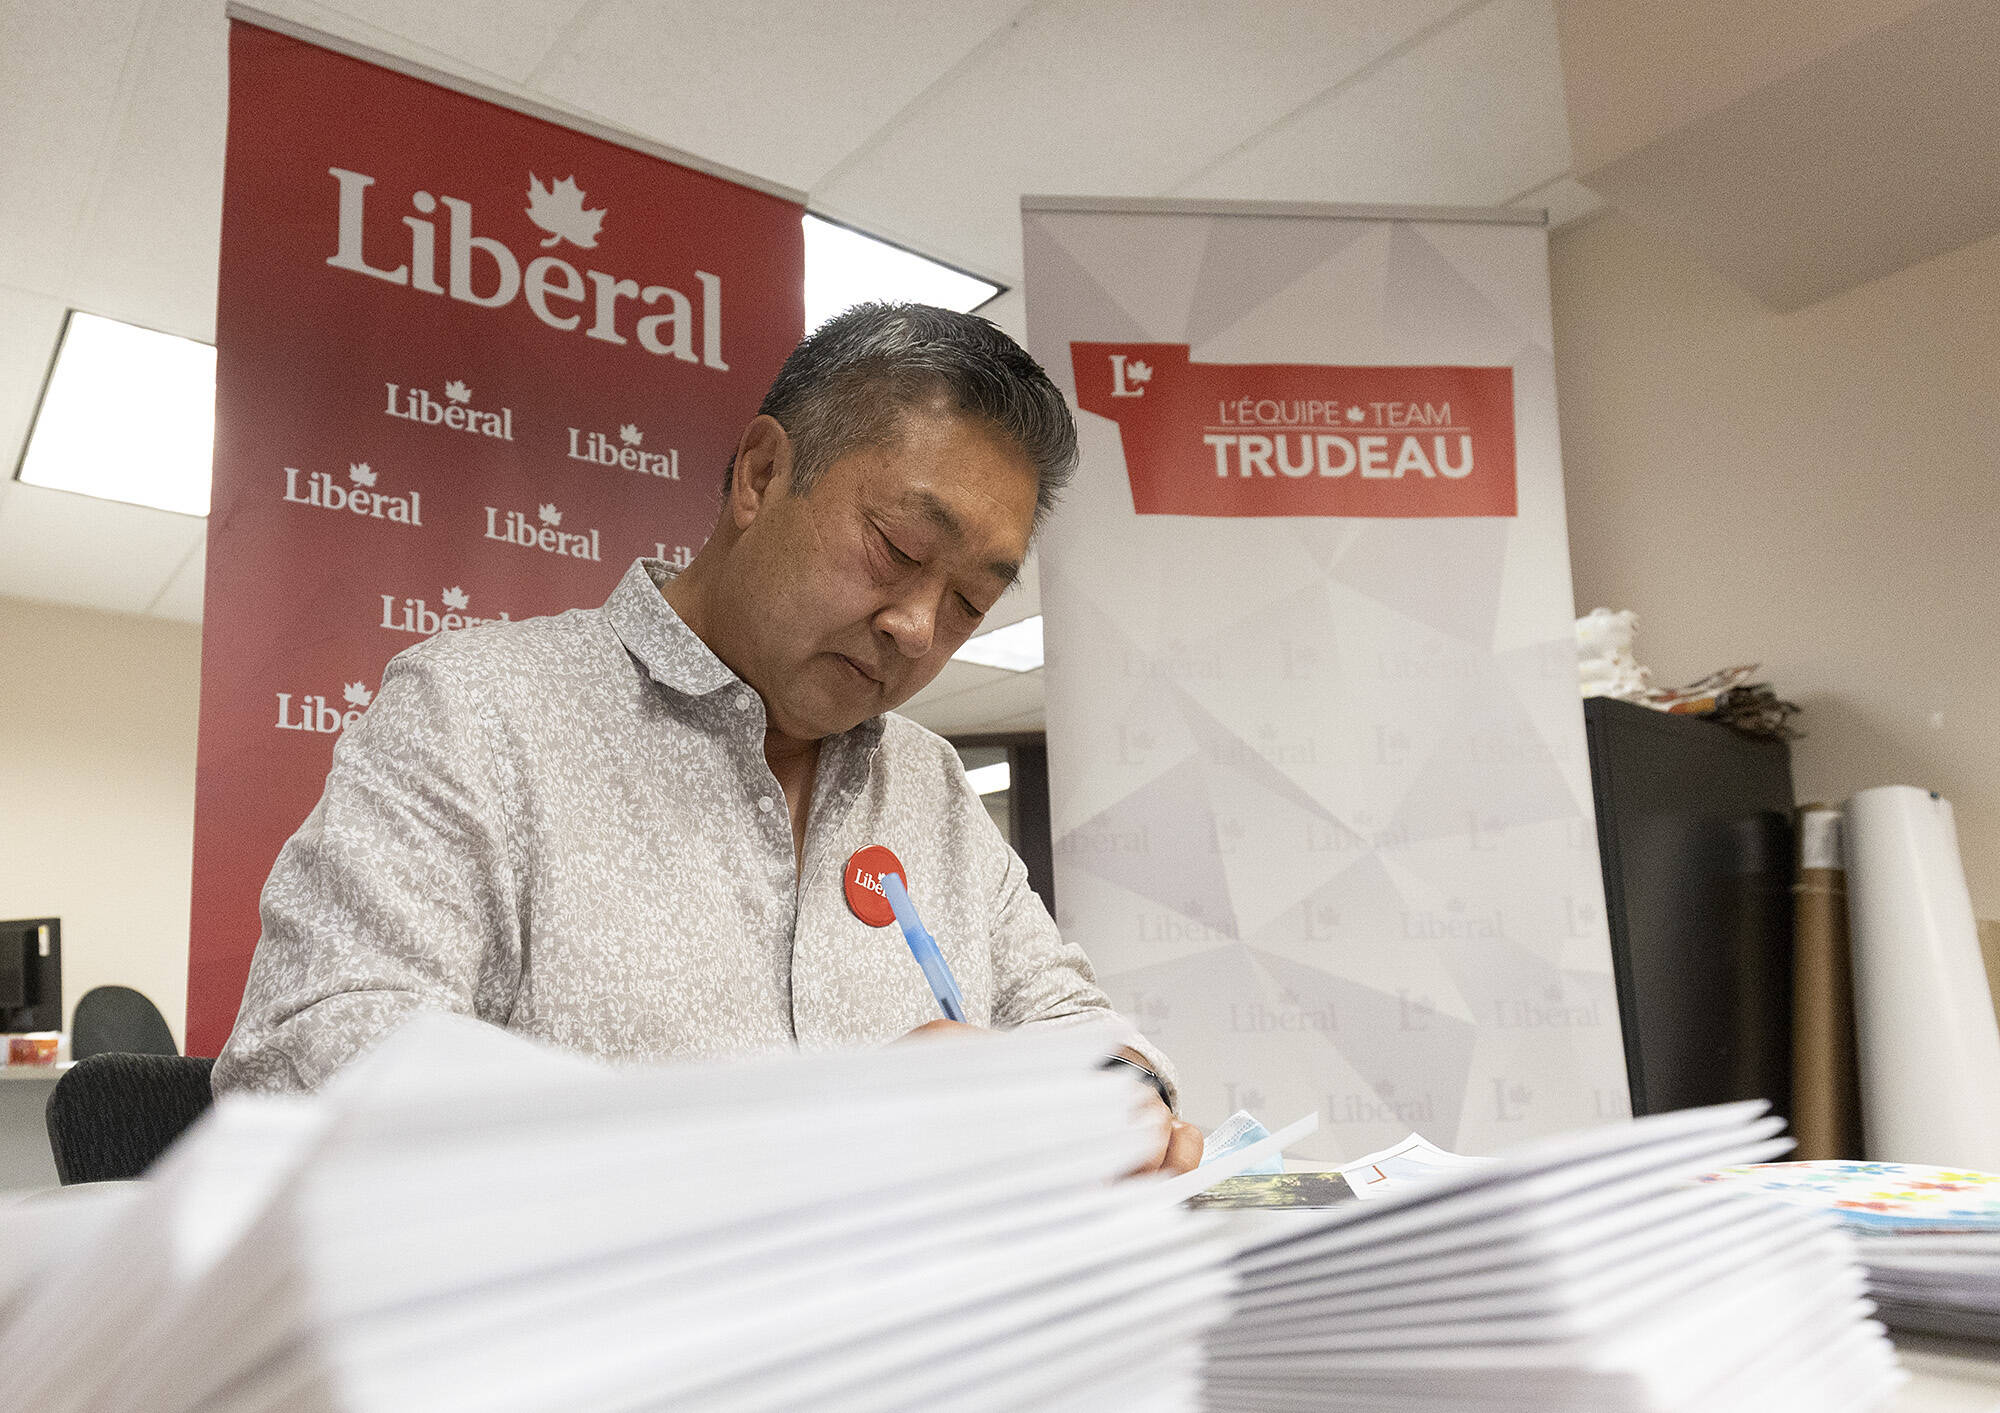 Federal Liberal candidate Doug Kobayashi signs thank you cards at his campaign office in Saanich on election day. (Arnold Lim/Black Press Media)